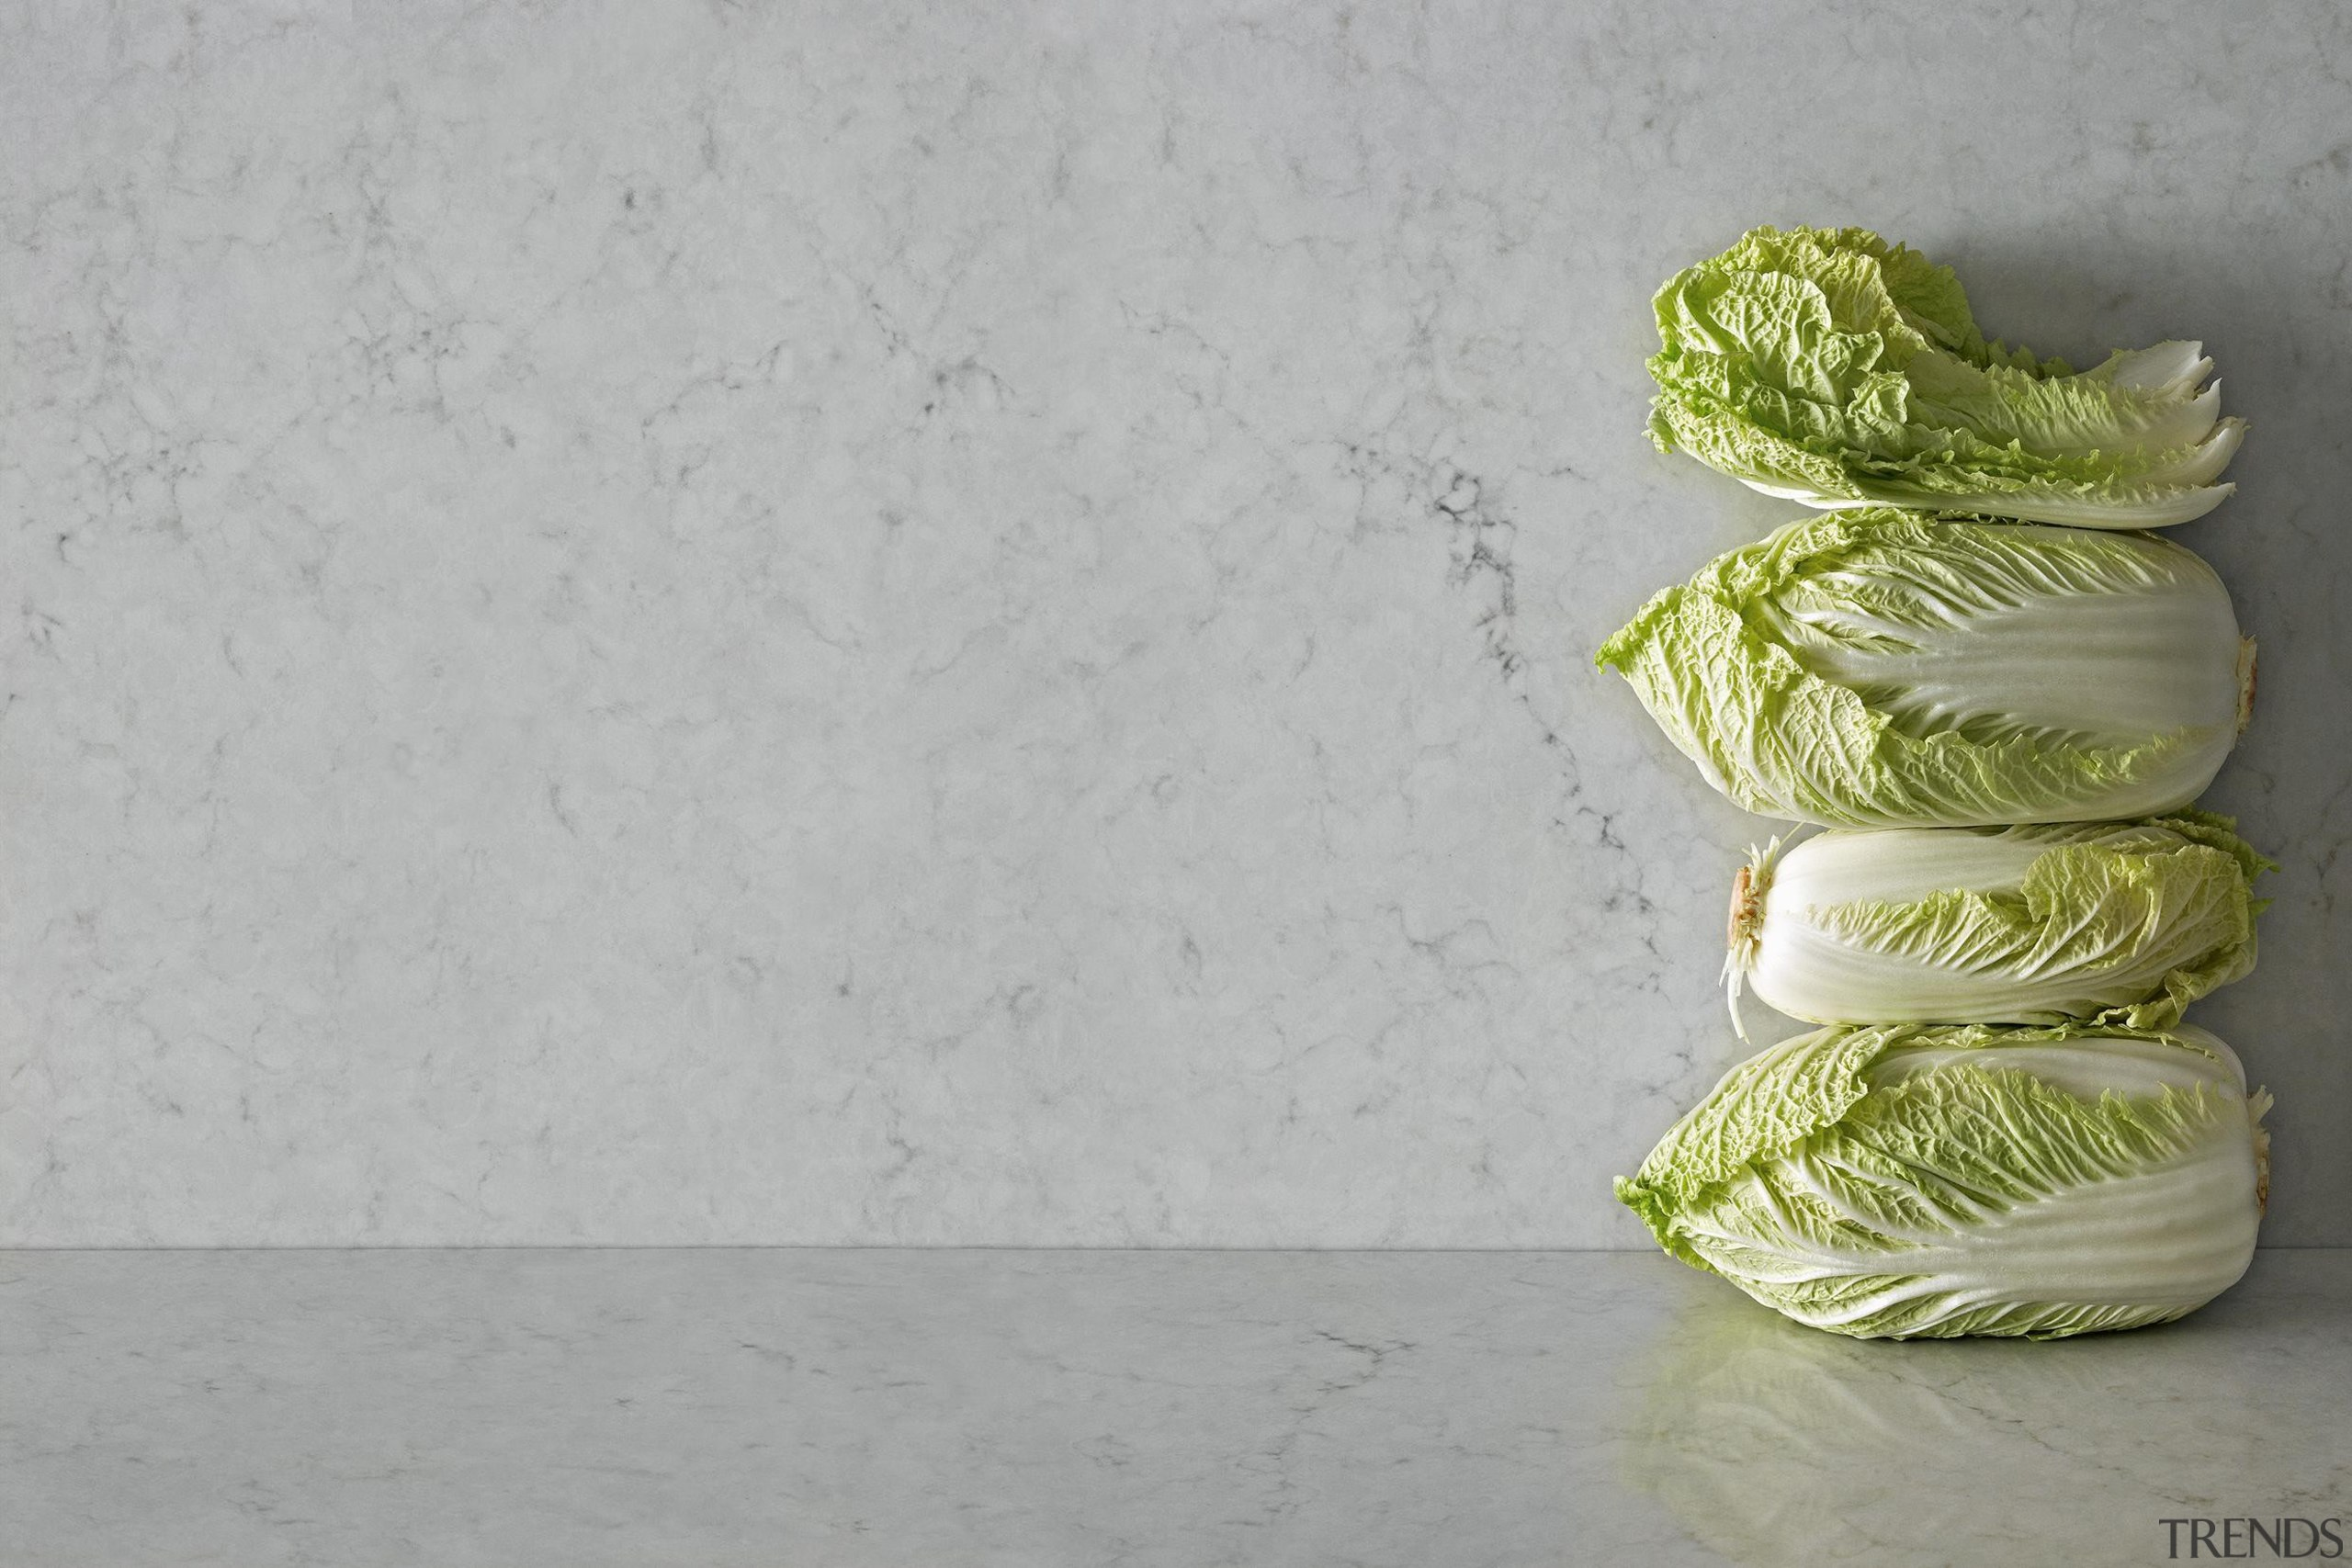 An eloquent opaque light grey with soft charcoal cabbage, green, produce, still life photography, gray